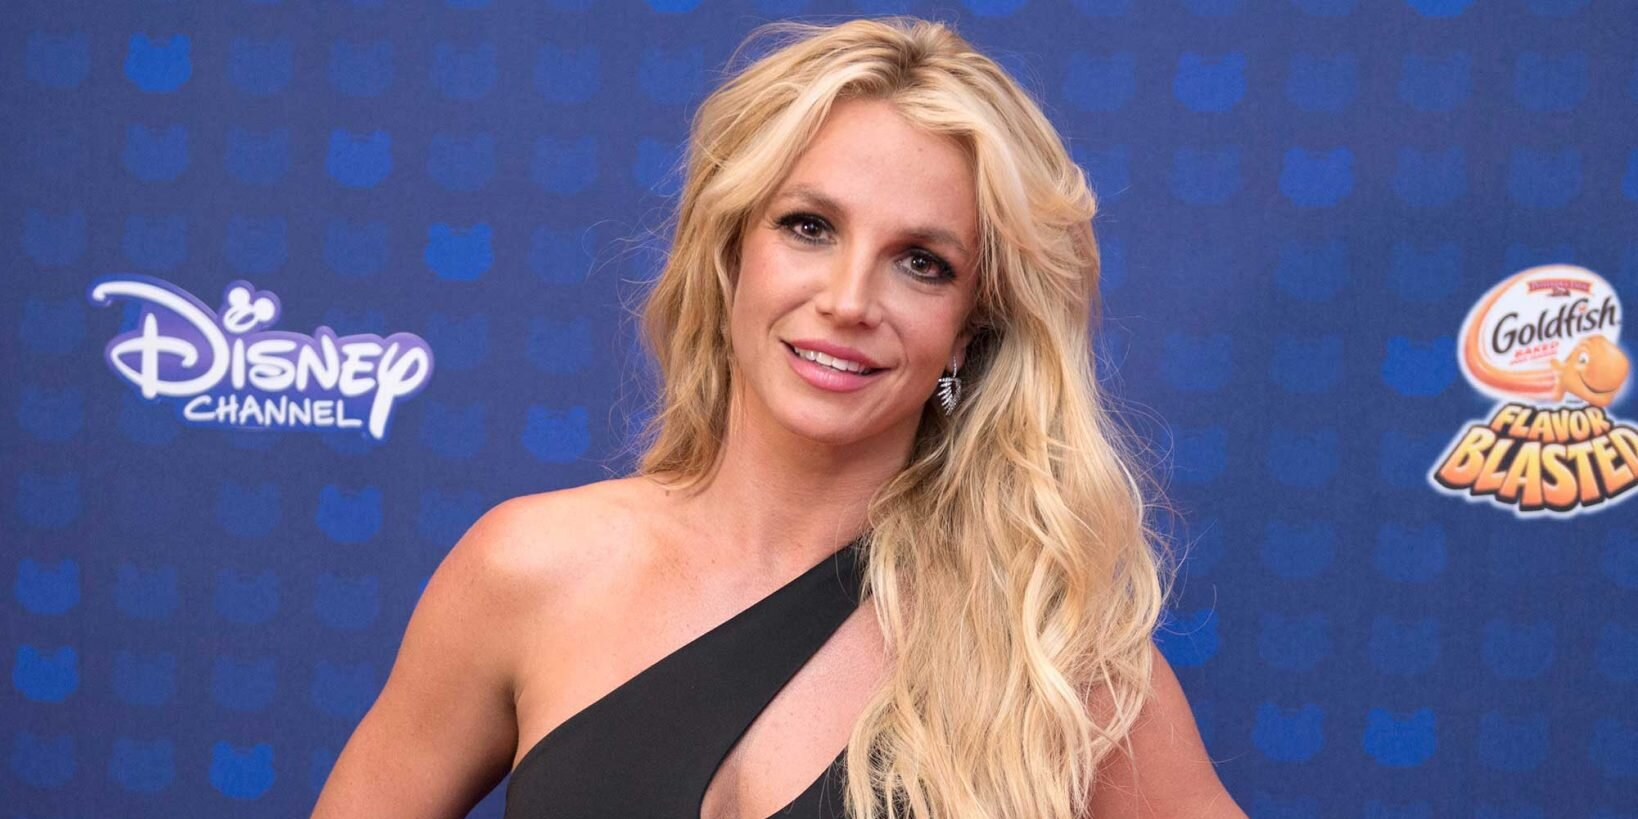 Britney Spears Opens Up About Her Diet and Choosing Portion Control: 'My Body Does Feel Way Better Now'.jpg